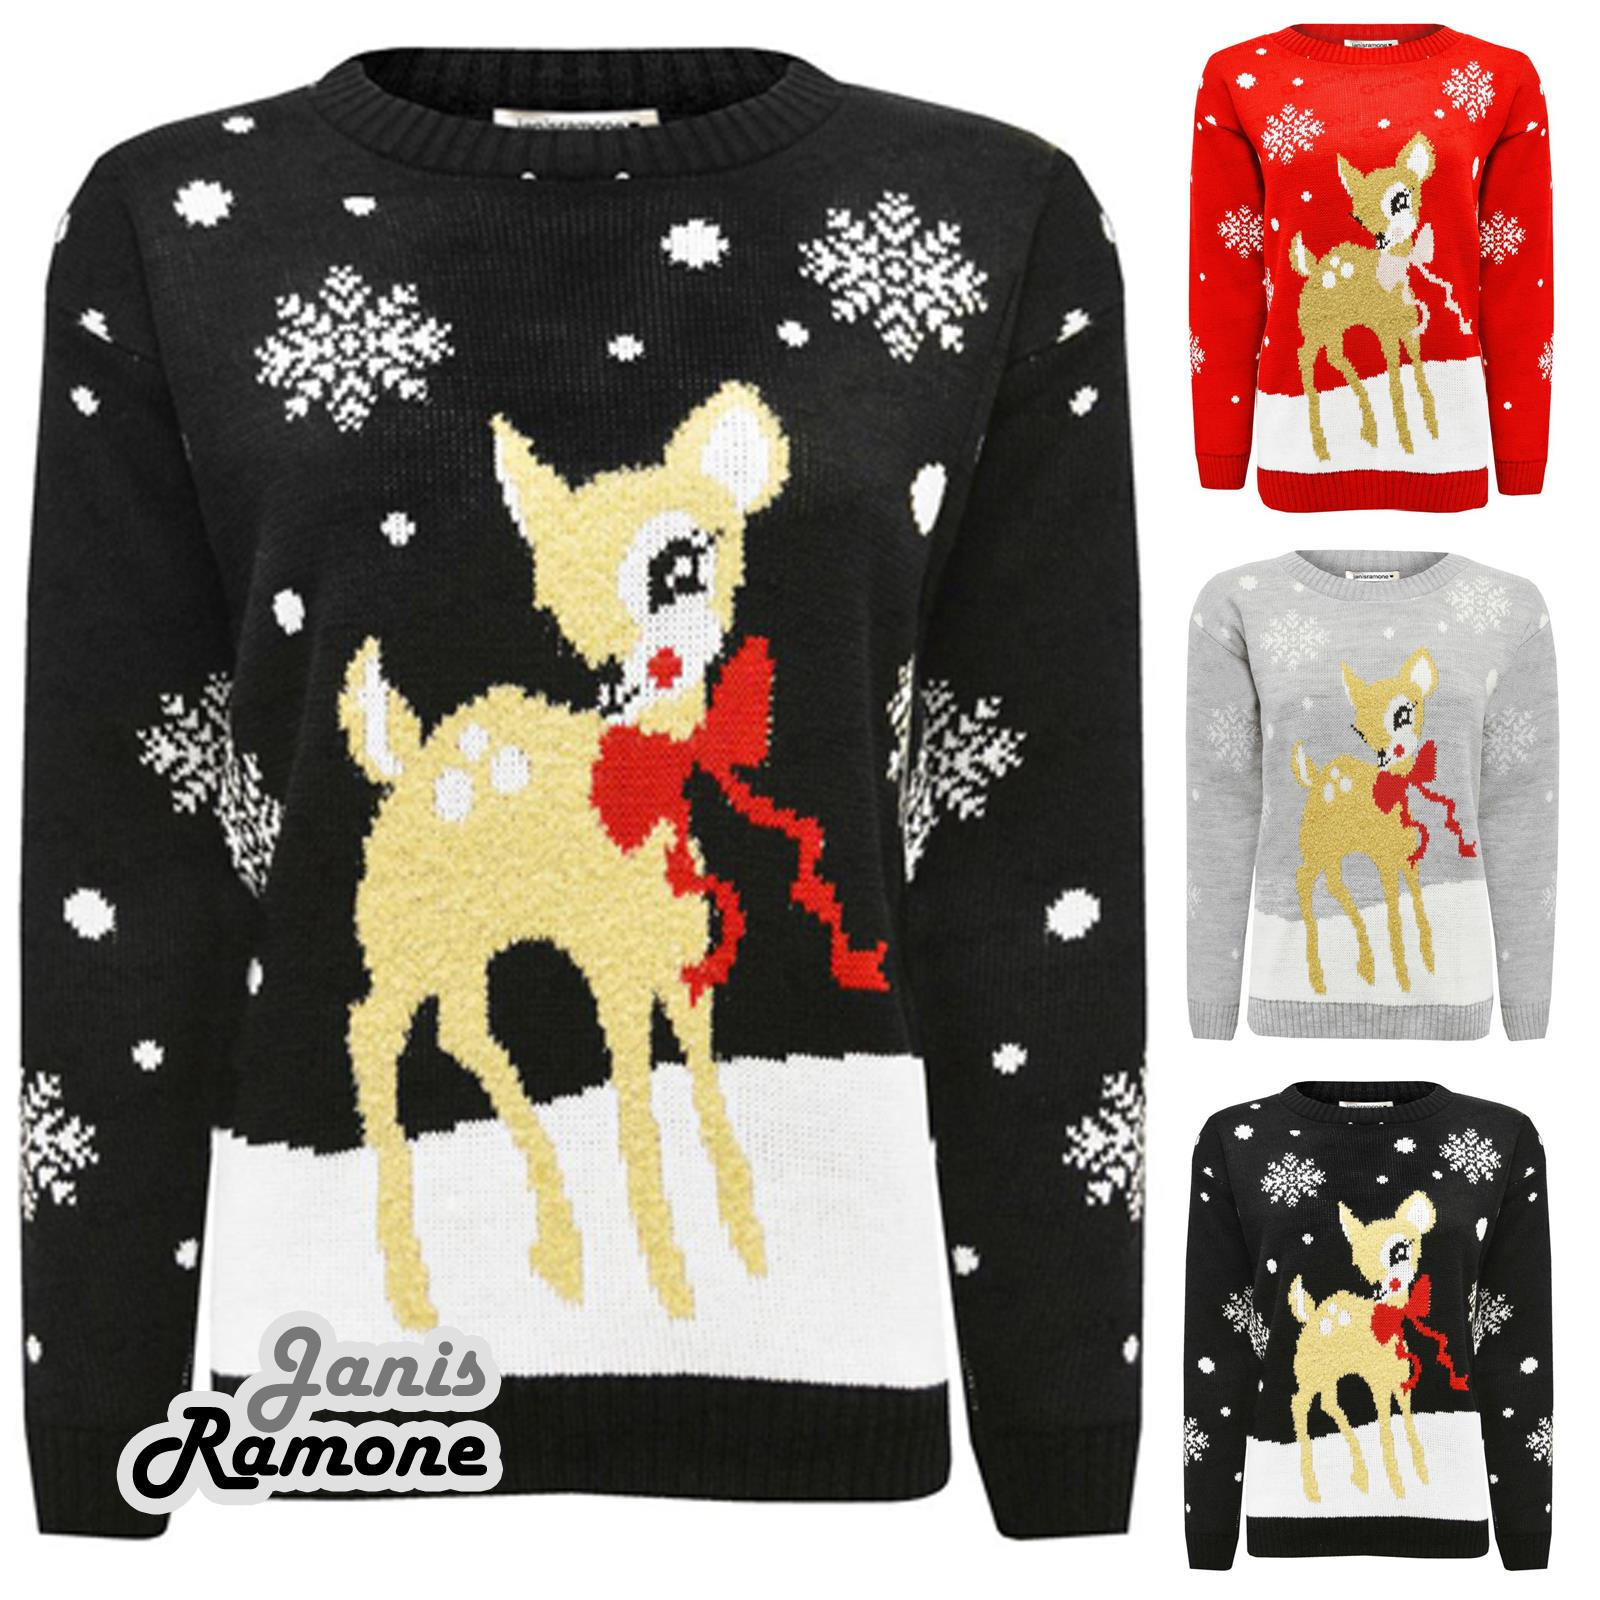 janisramone Kids Girls Boys New Christmas Baby Deer Bambi Novelty Xmas Party Knitted Jumper Sweater Top